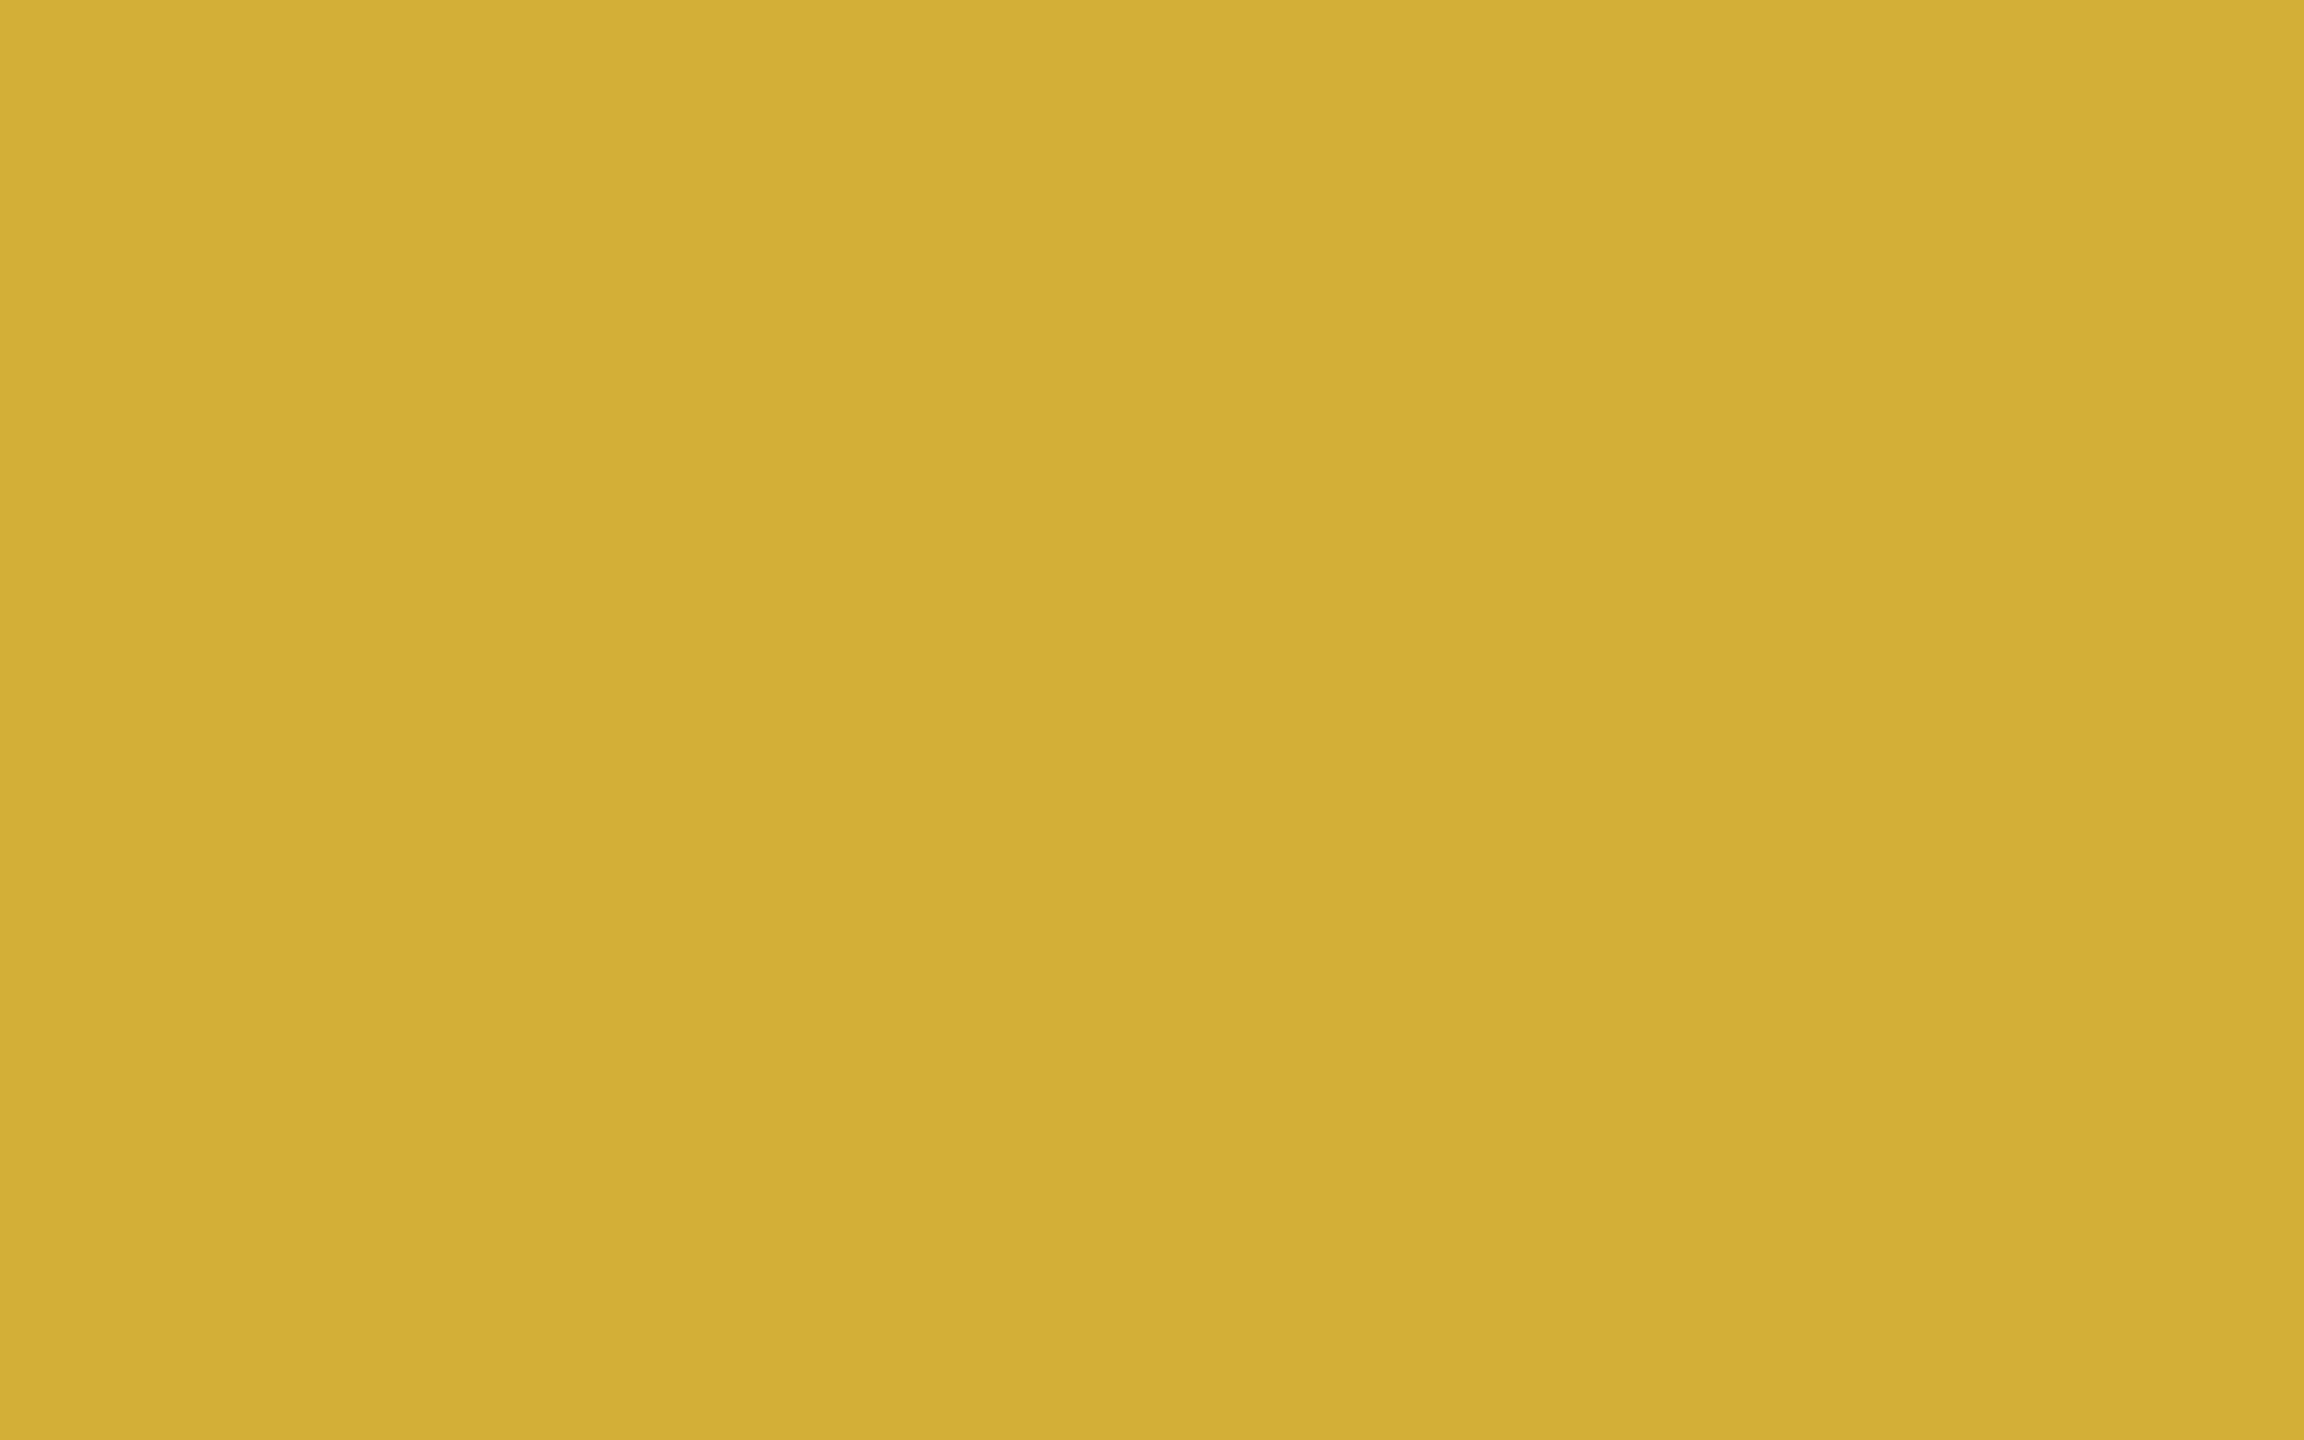 2304x1440 Gold Metallic Solid Color Background